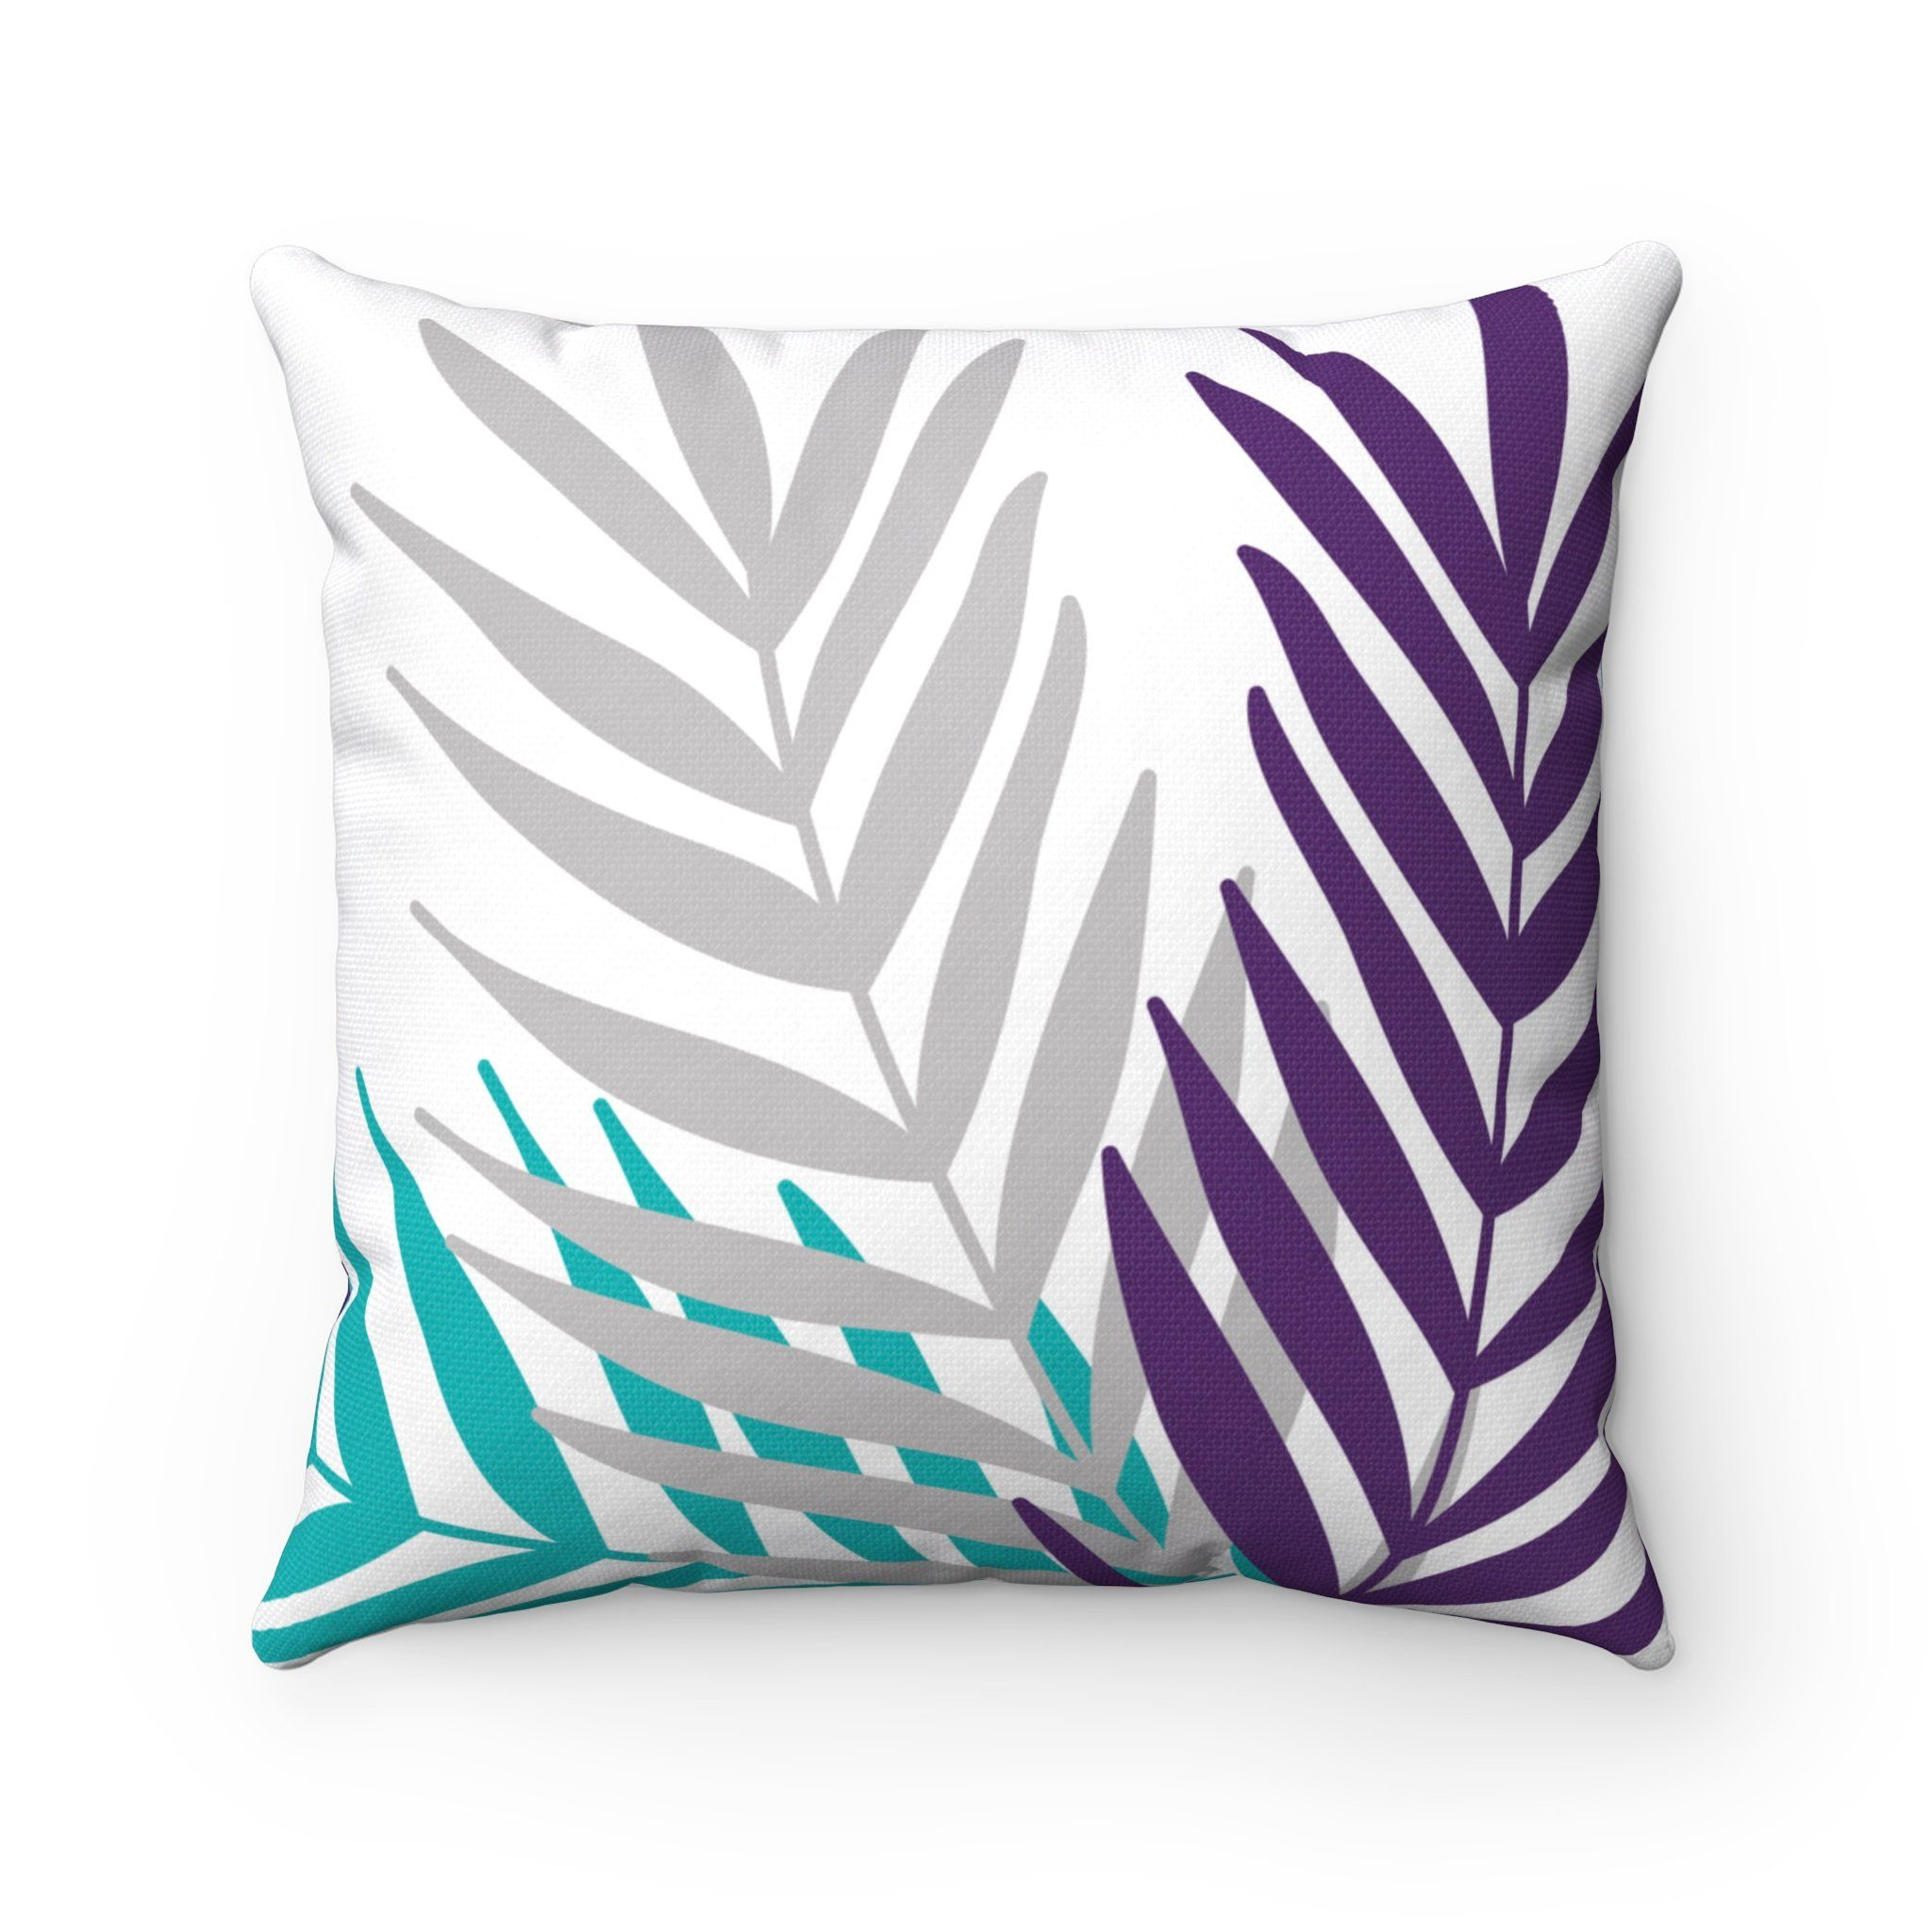 Excited To Share The Latest Addition To My Etsy Shop Throw Pillow Cover Purple Teal Gray Palm Leaves P Purple Pillows Palm Leaf Pillow Purple Pillow Covers